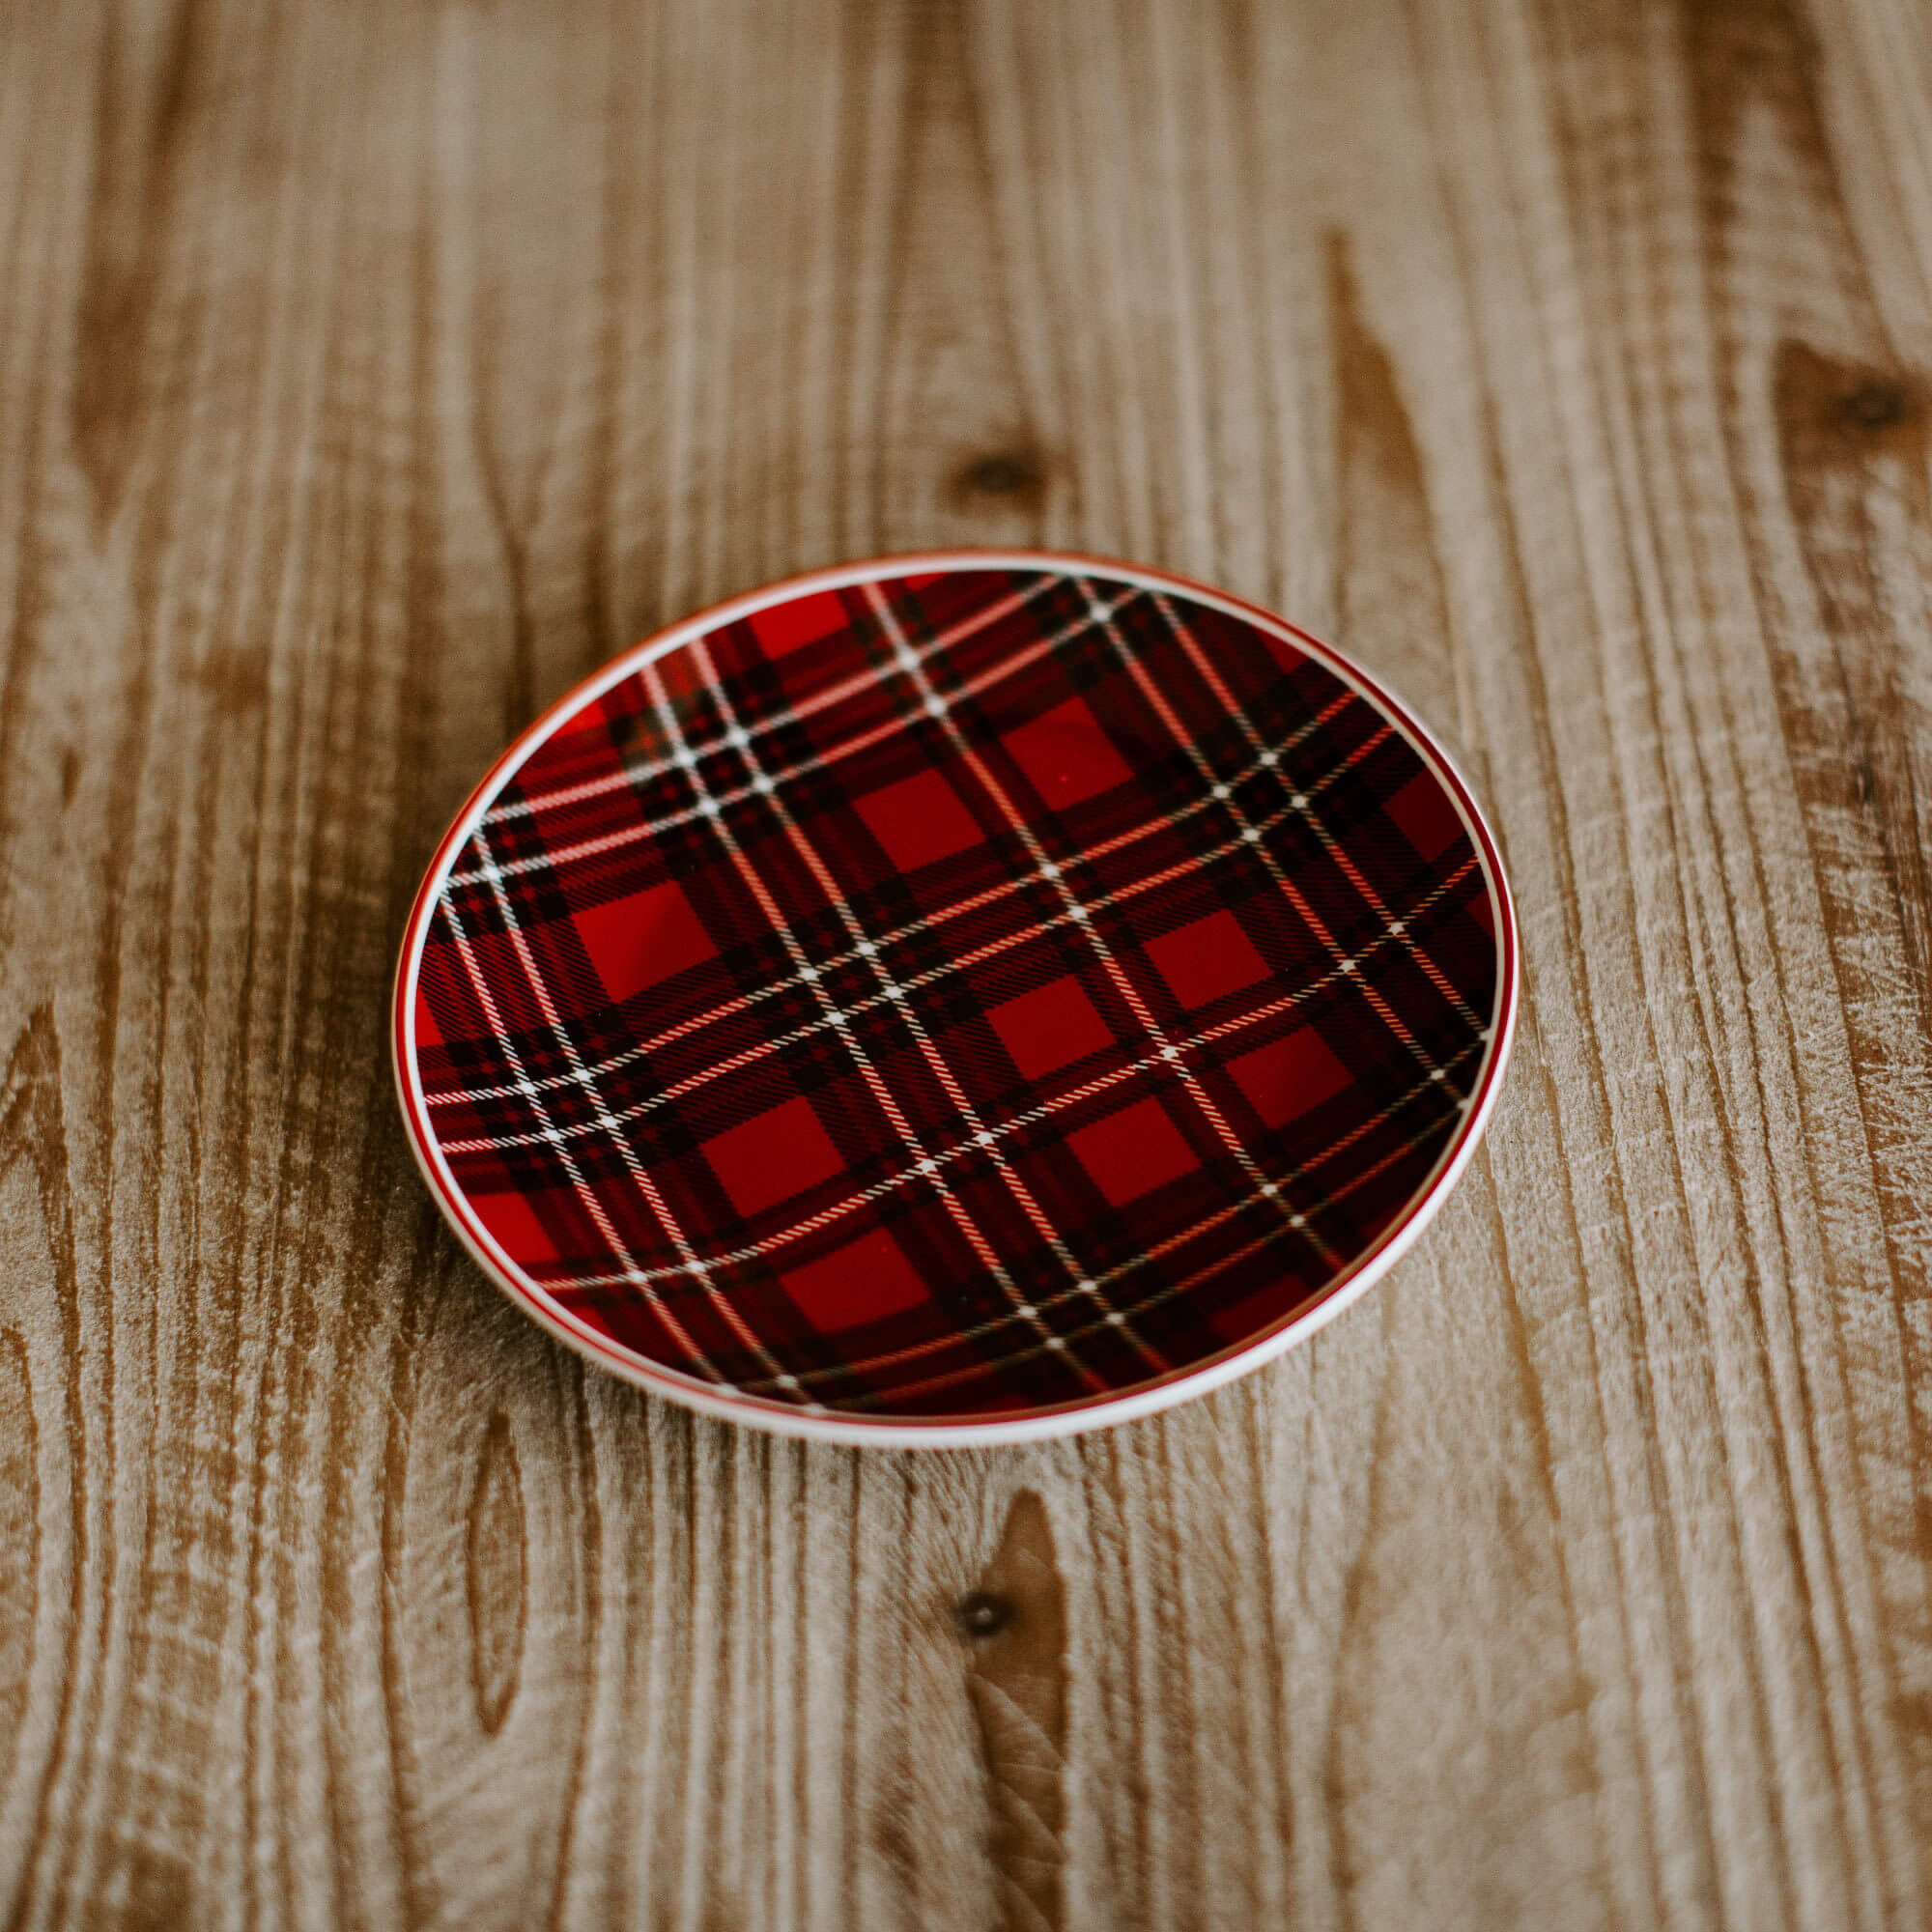 A small 6 inch plate in a red and black plaid pattern for the holiday table